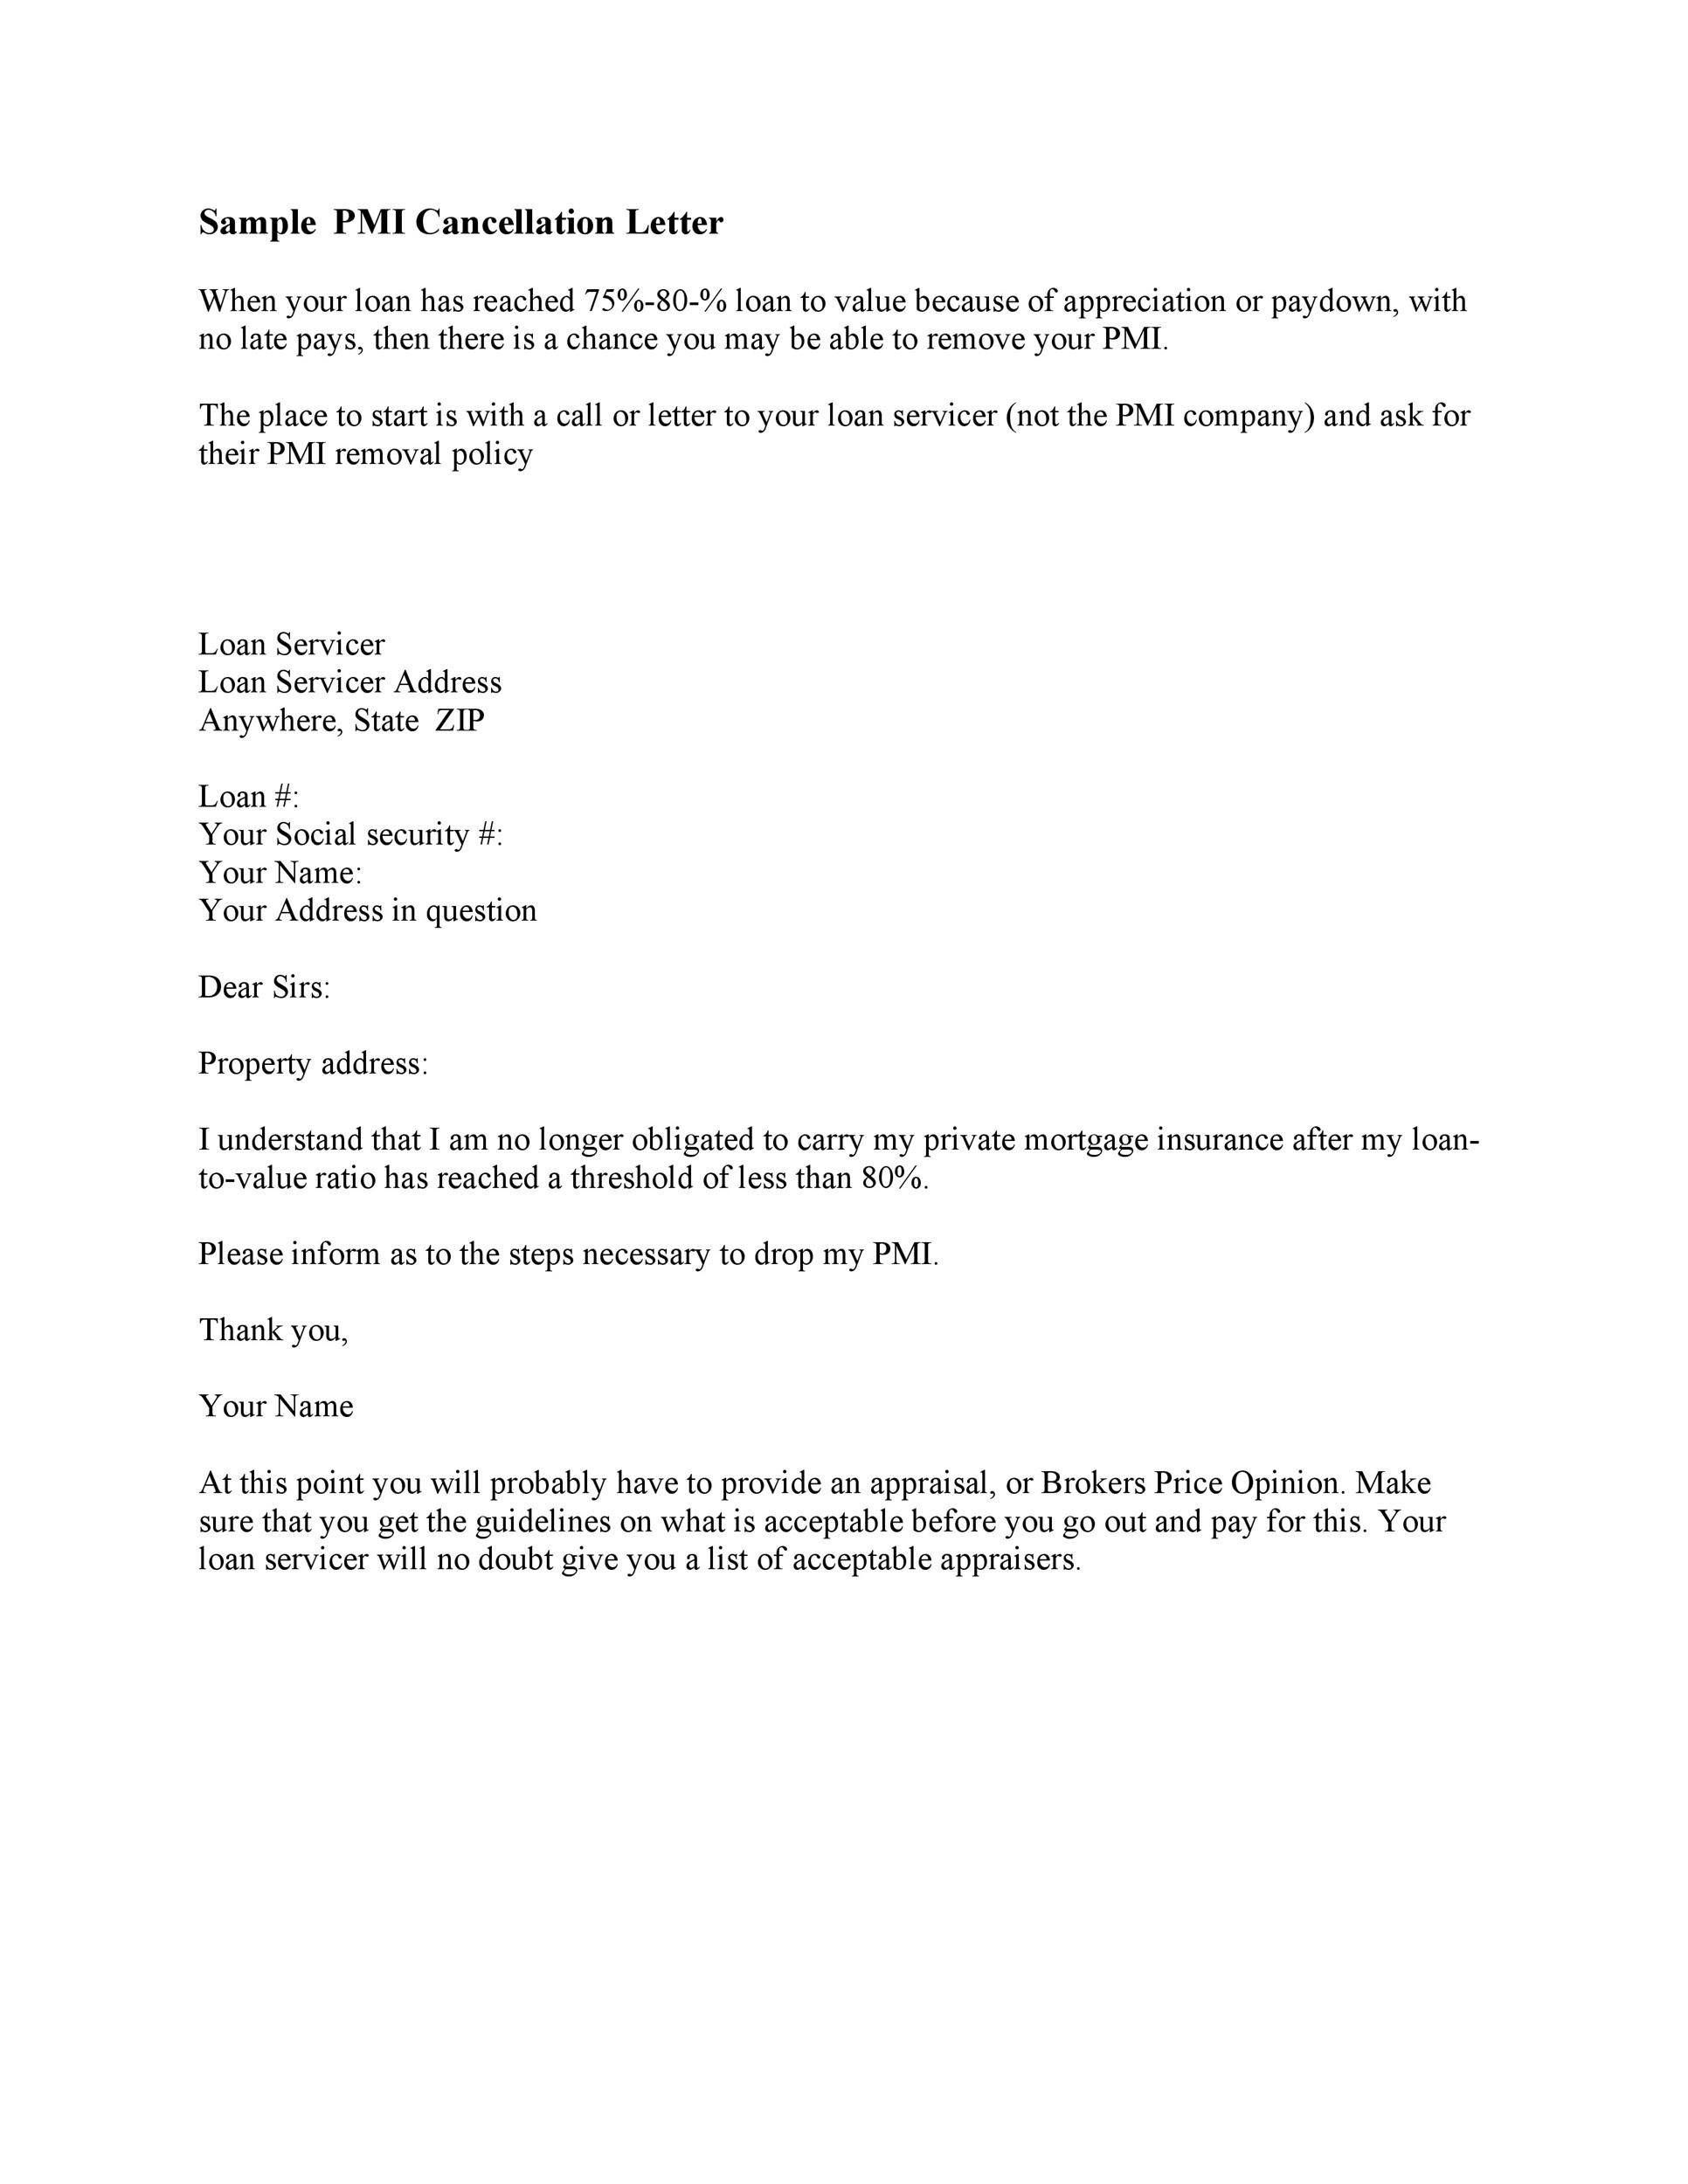 Free cancellation letter 34